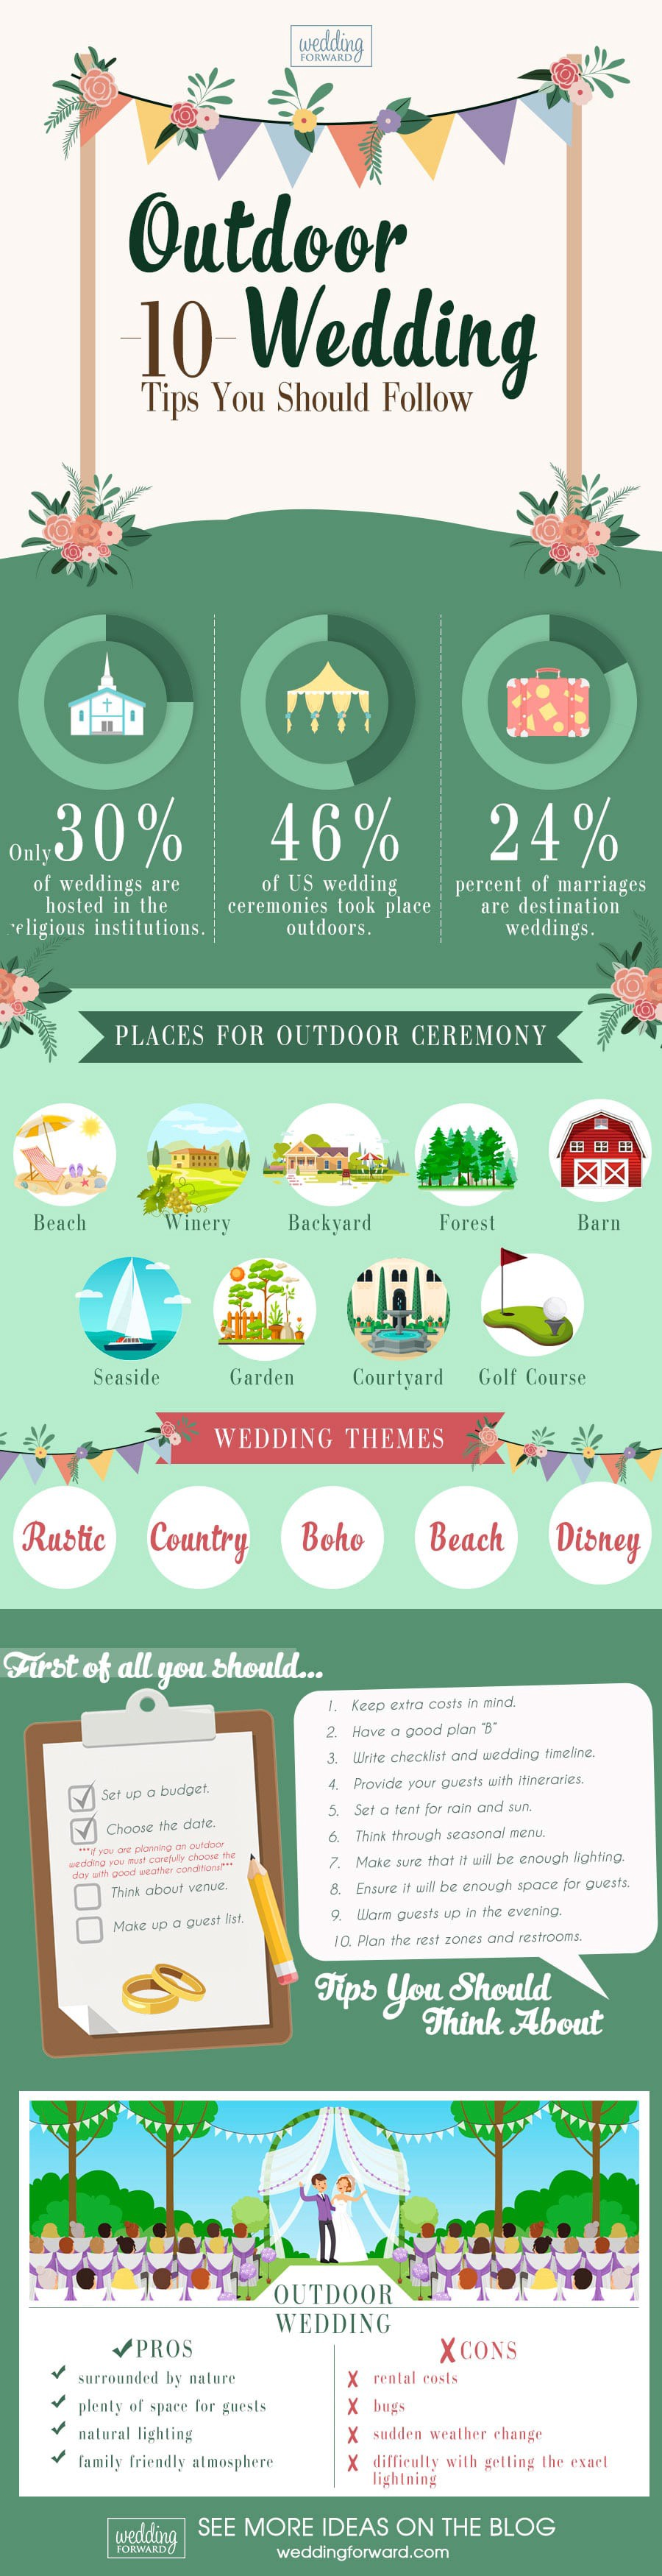 How To Plan An Outdoor Wedding 20 Planning Tips You Should Know ...